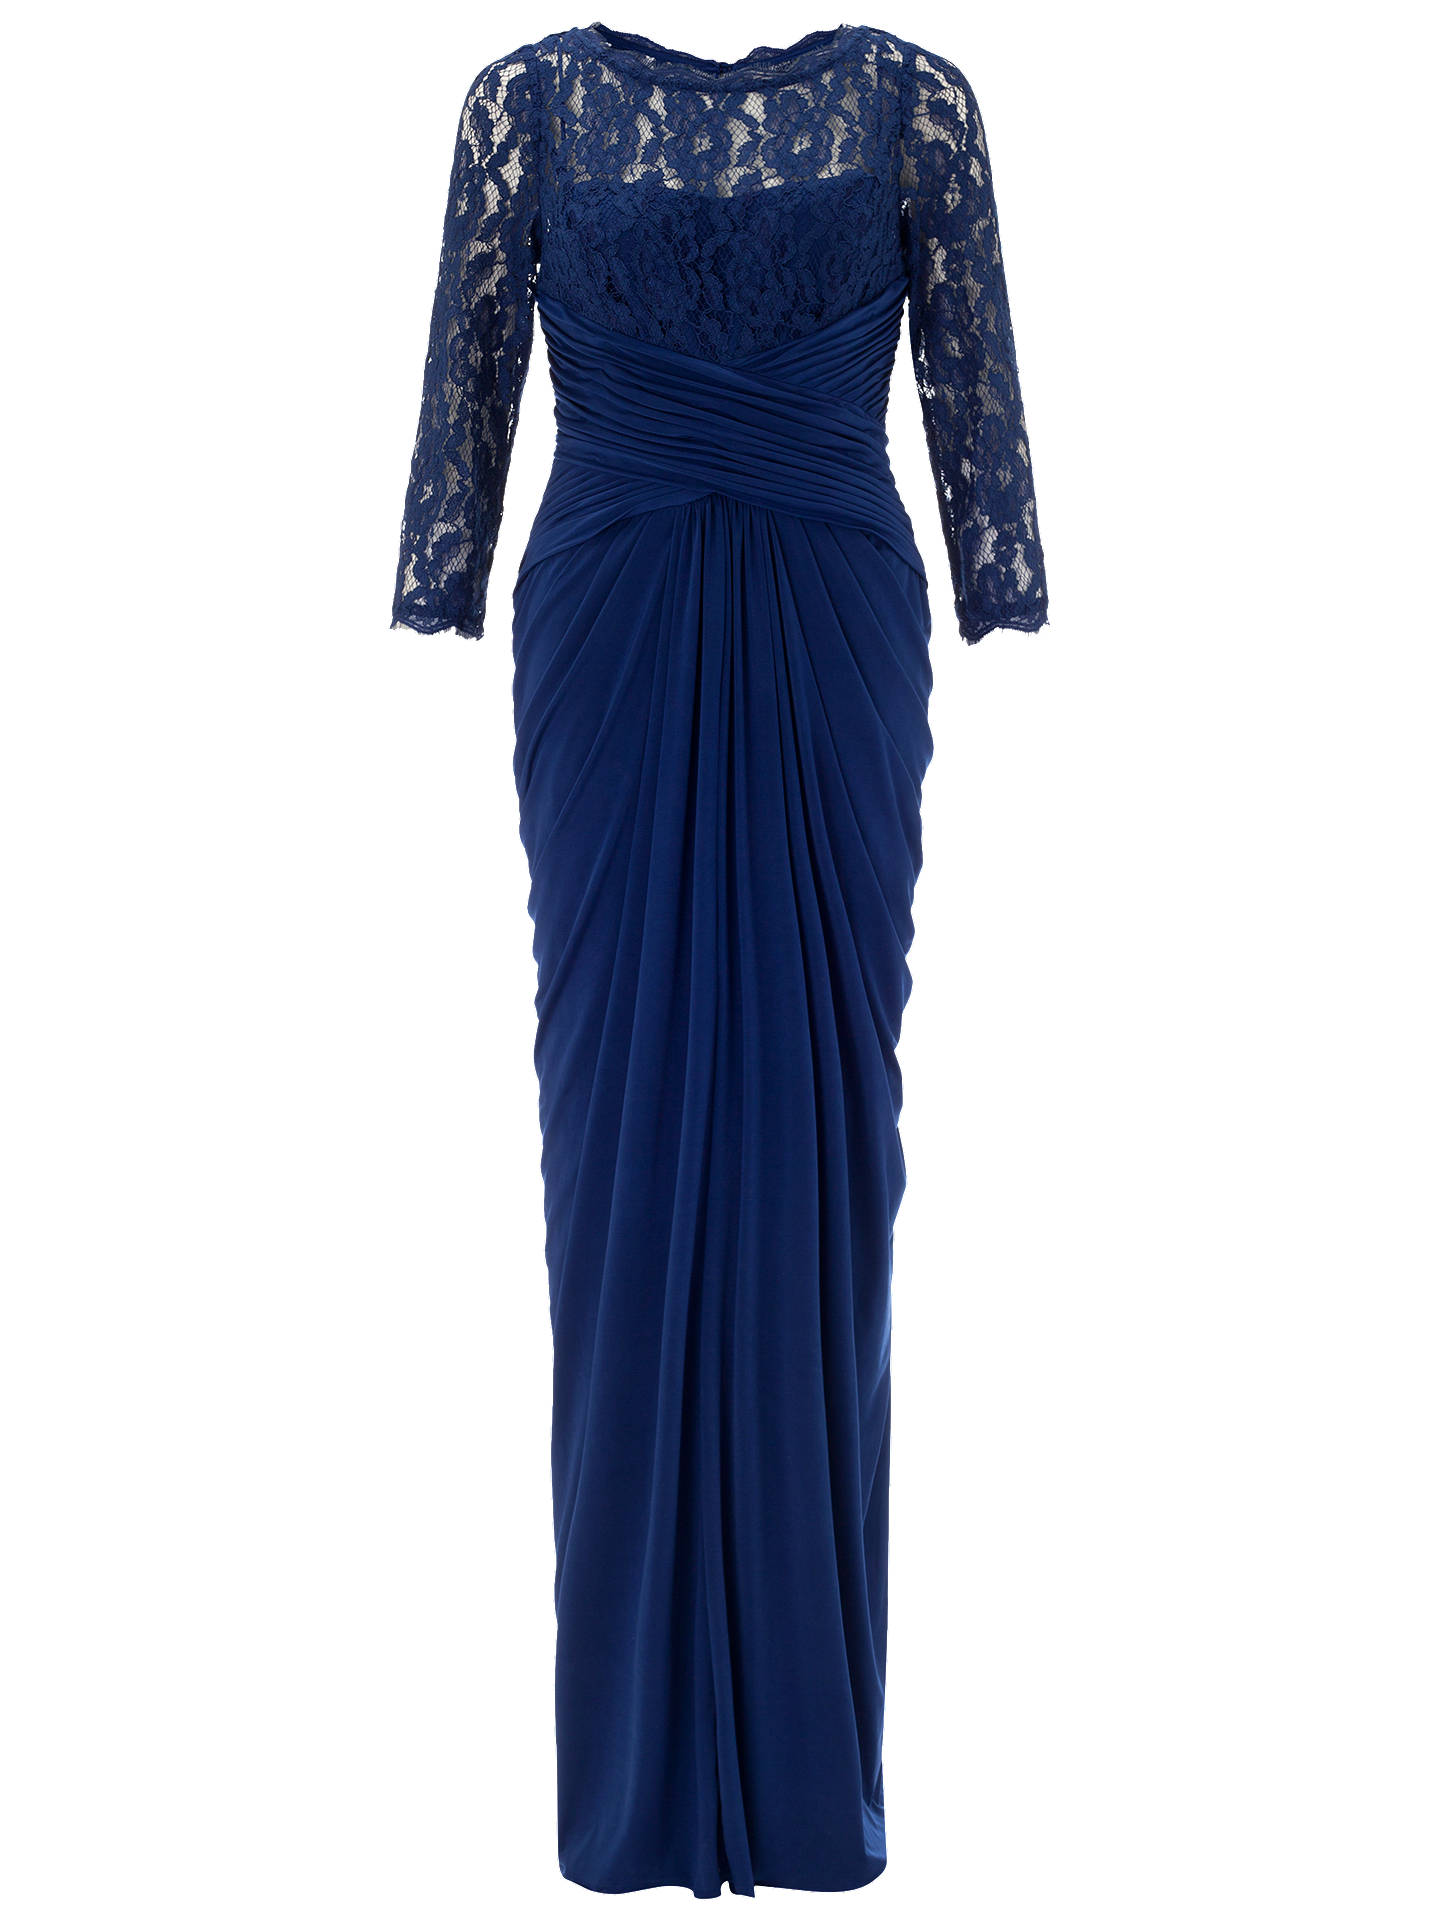 Adrianna Papell Lace And Venechia Jersey Gown, Navy at John Lewis ...